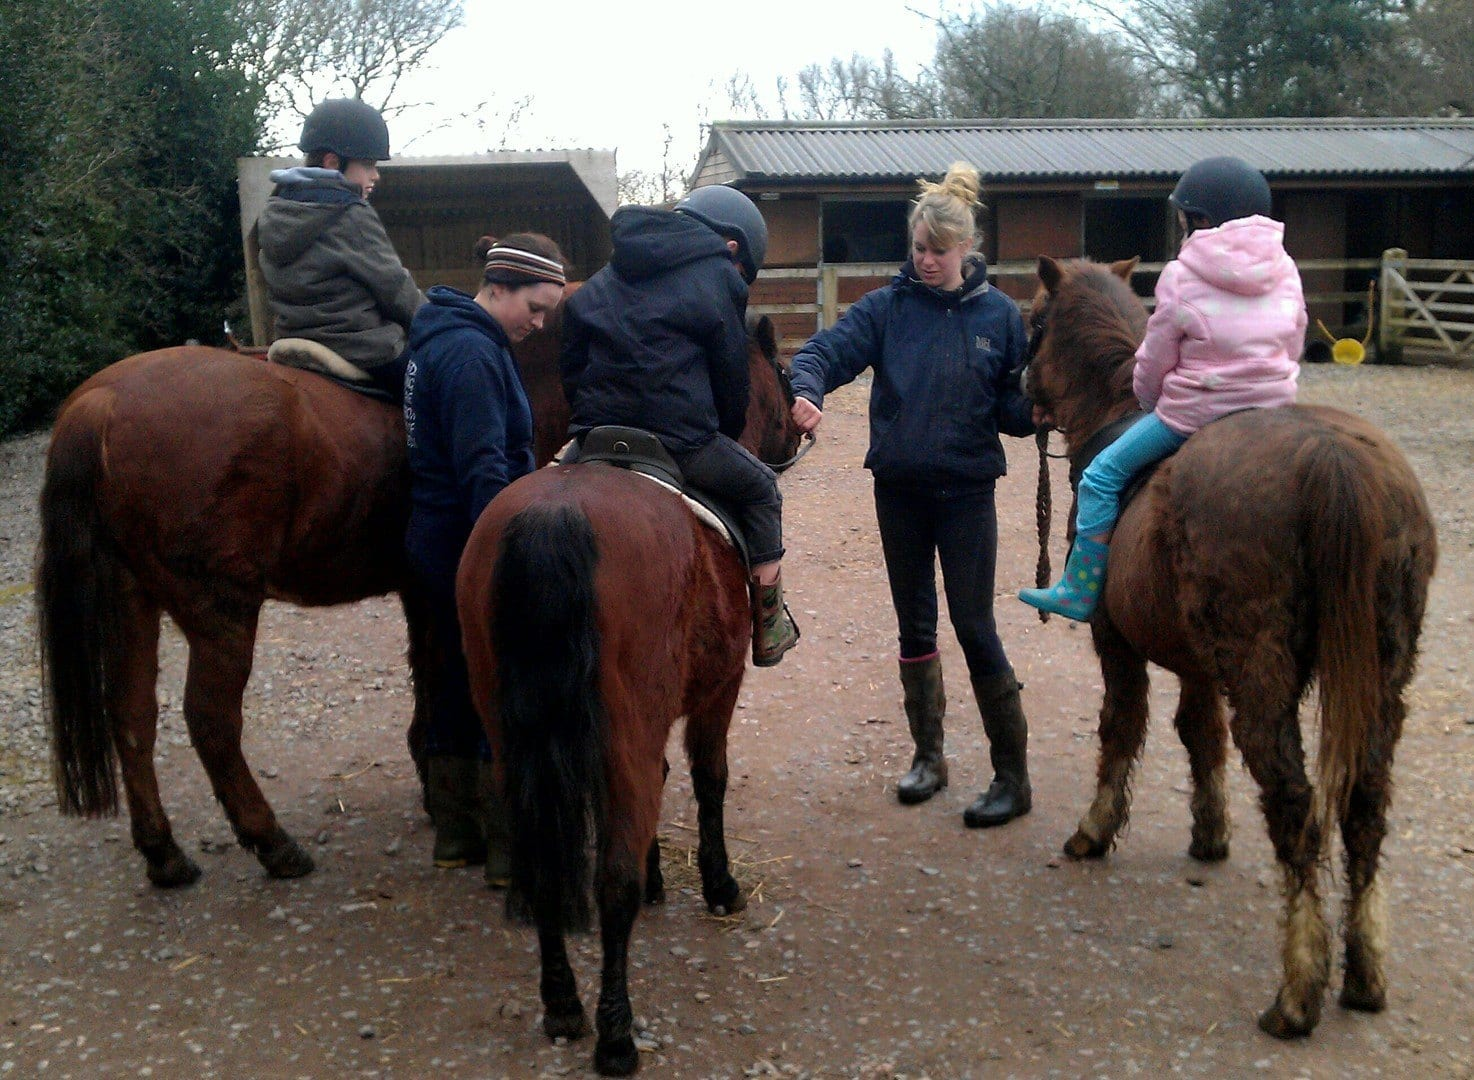 Children getting ready for a ride out on the horses